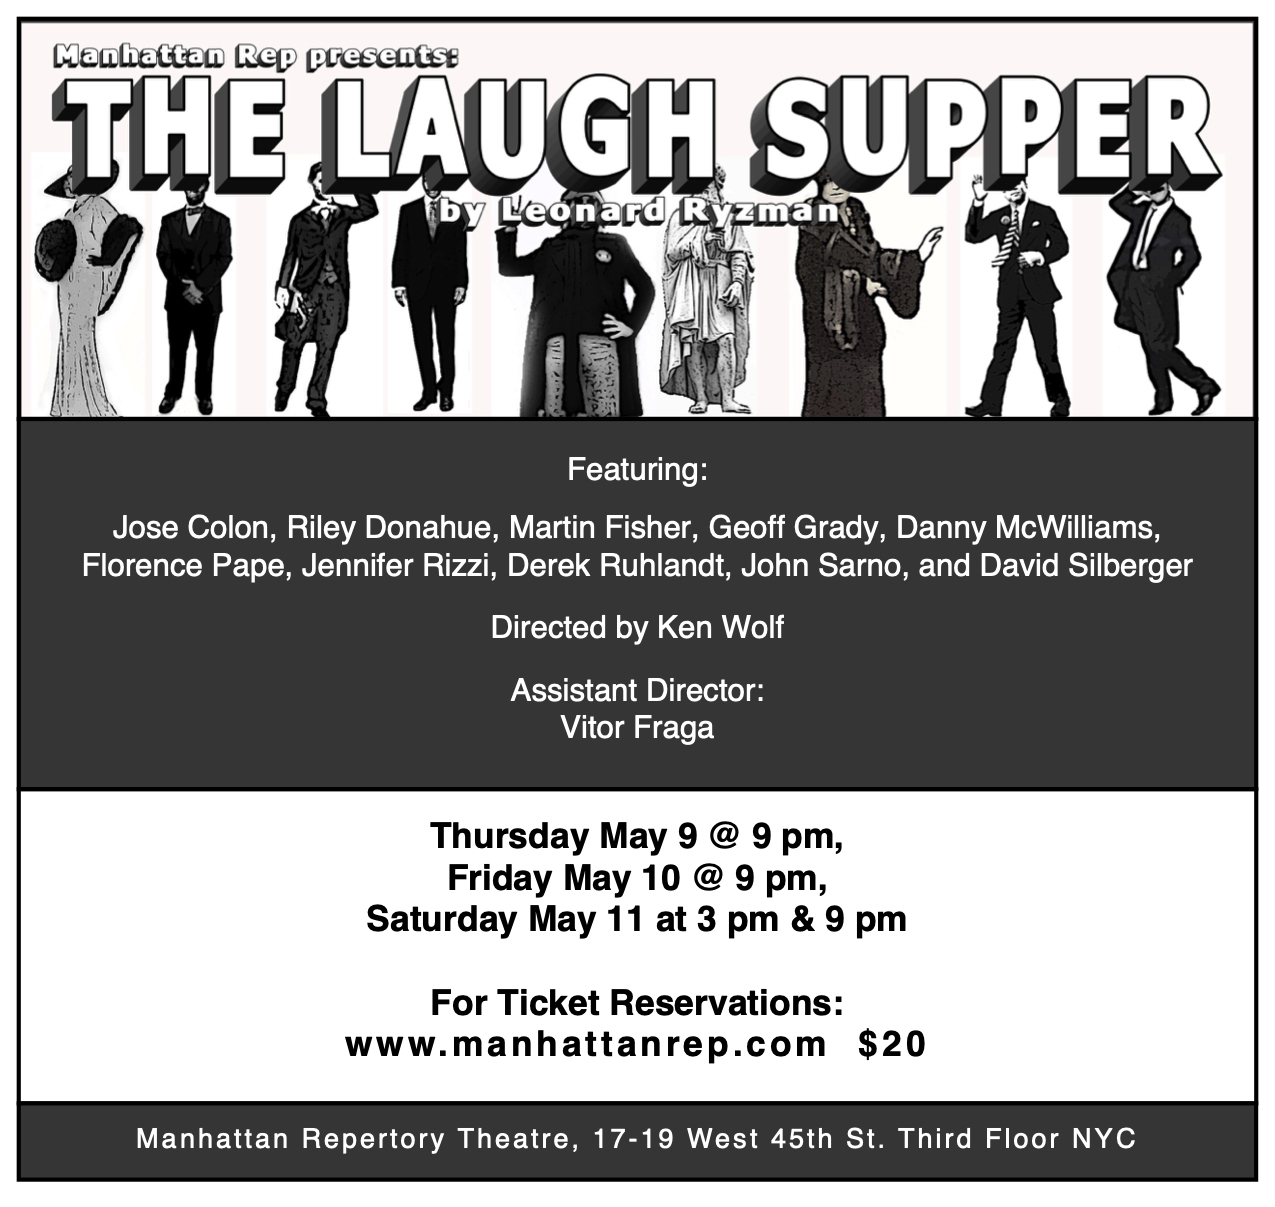 THE LAUGH SUPPER POSTER Final1.jpeg